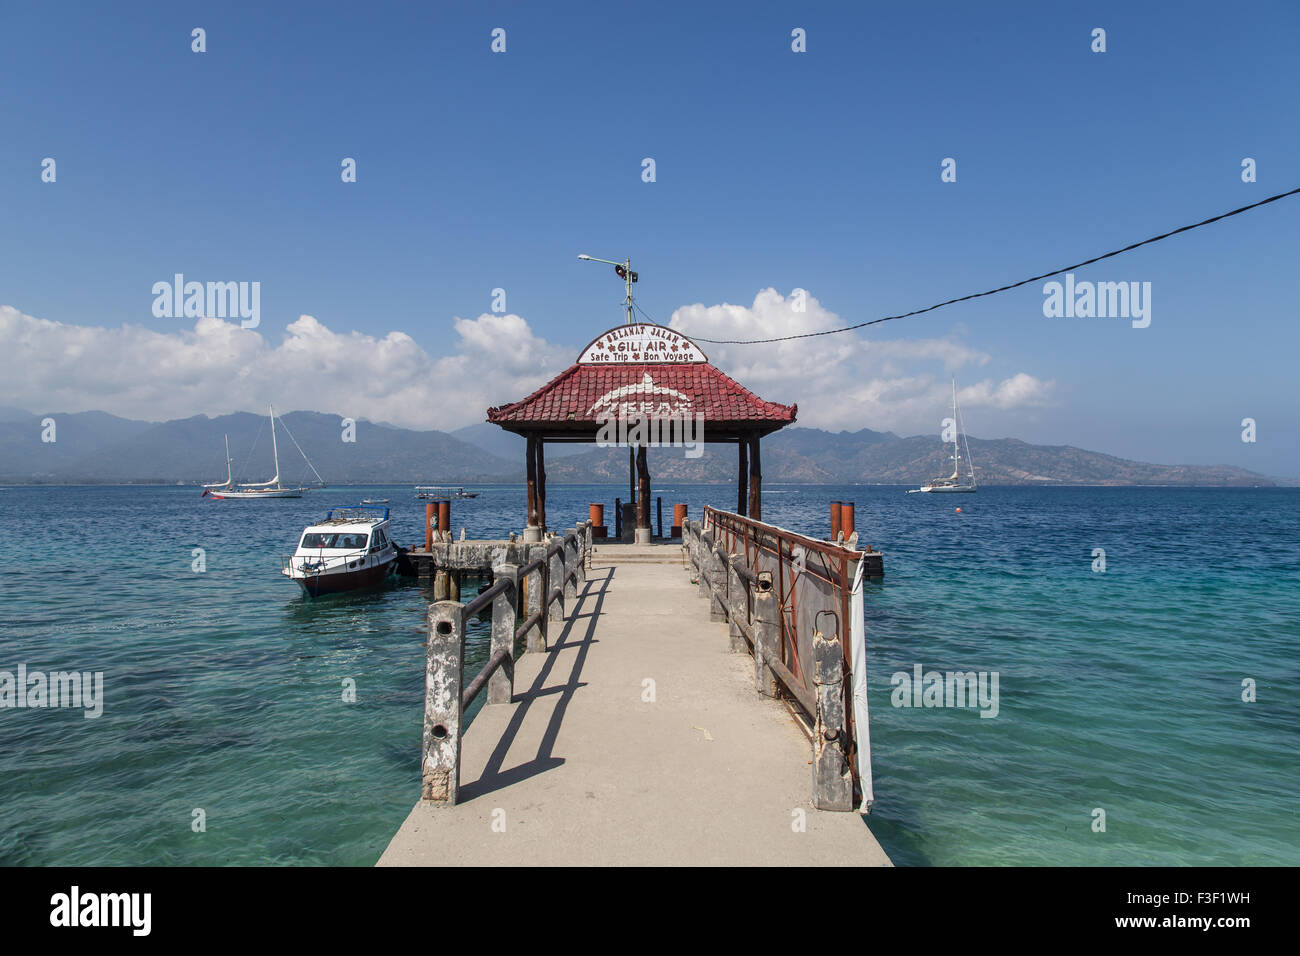 Gili Air jetty - Stock Image